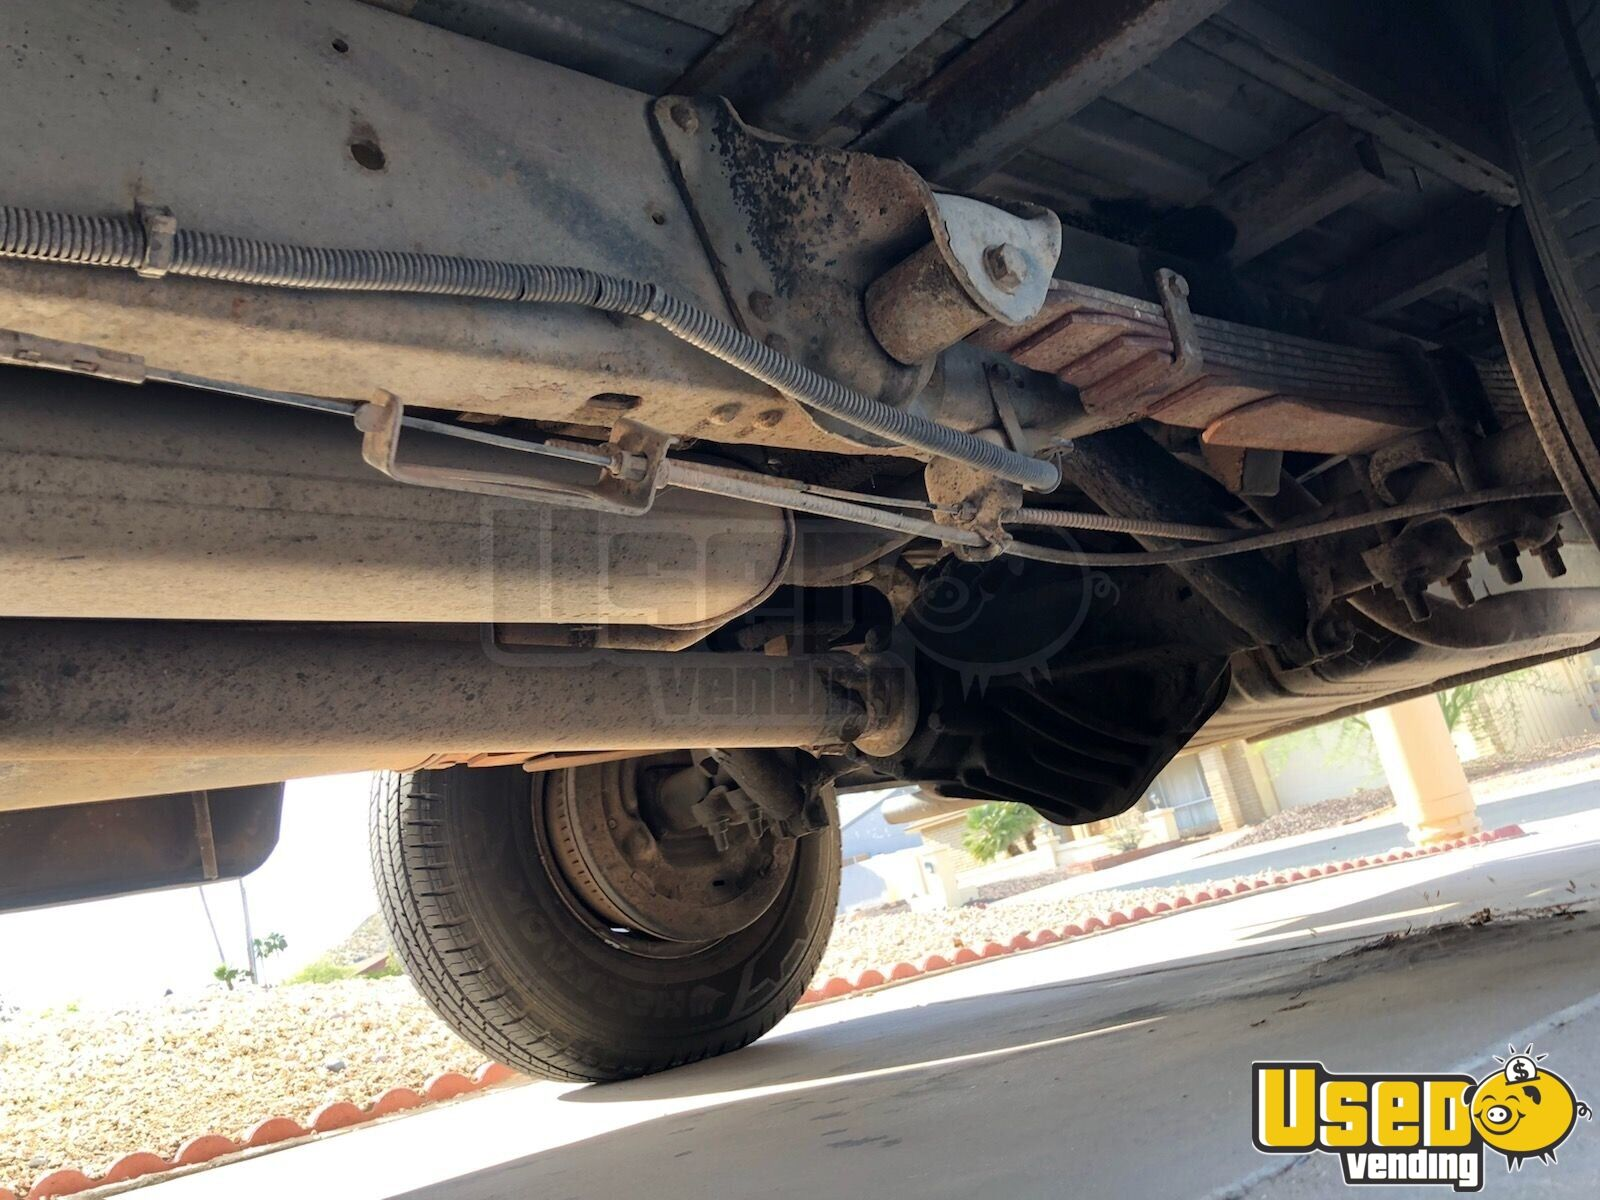 1991 P30 Step Van. Mobile Boutique Truck 30 Arizona Diesel Engine for Sale - 30